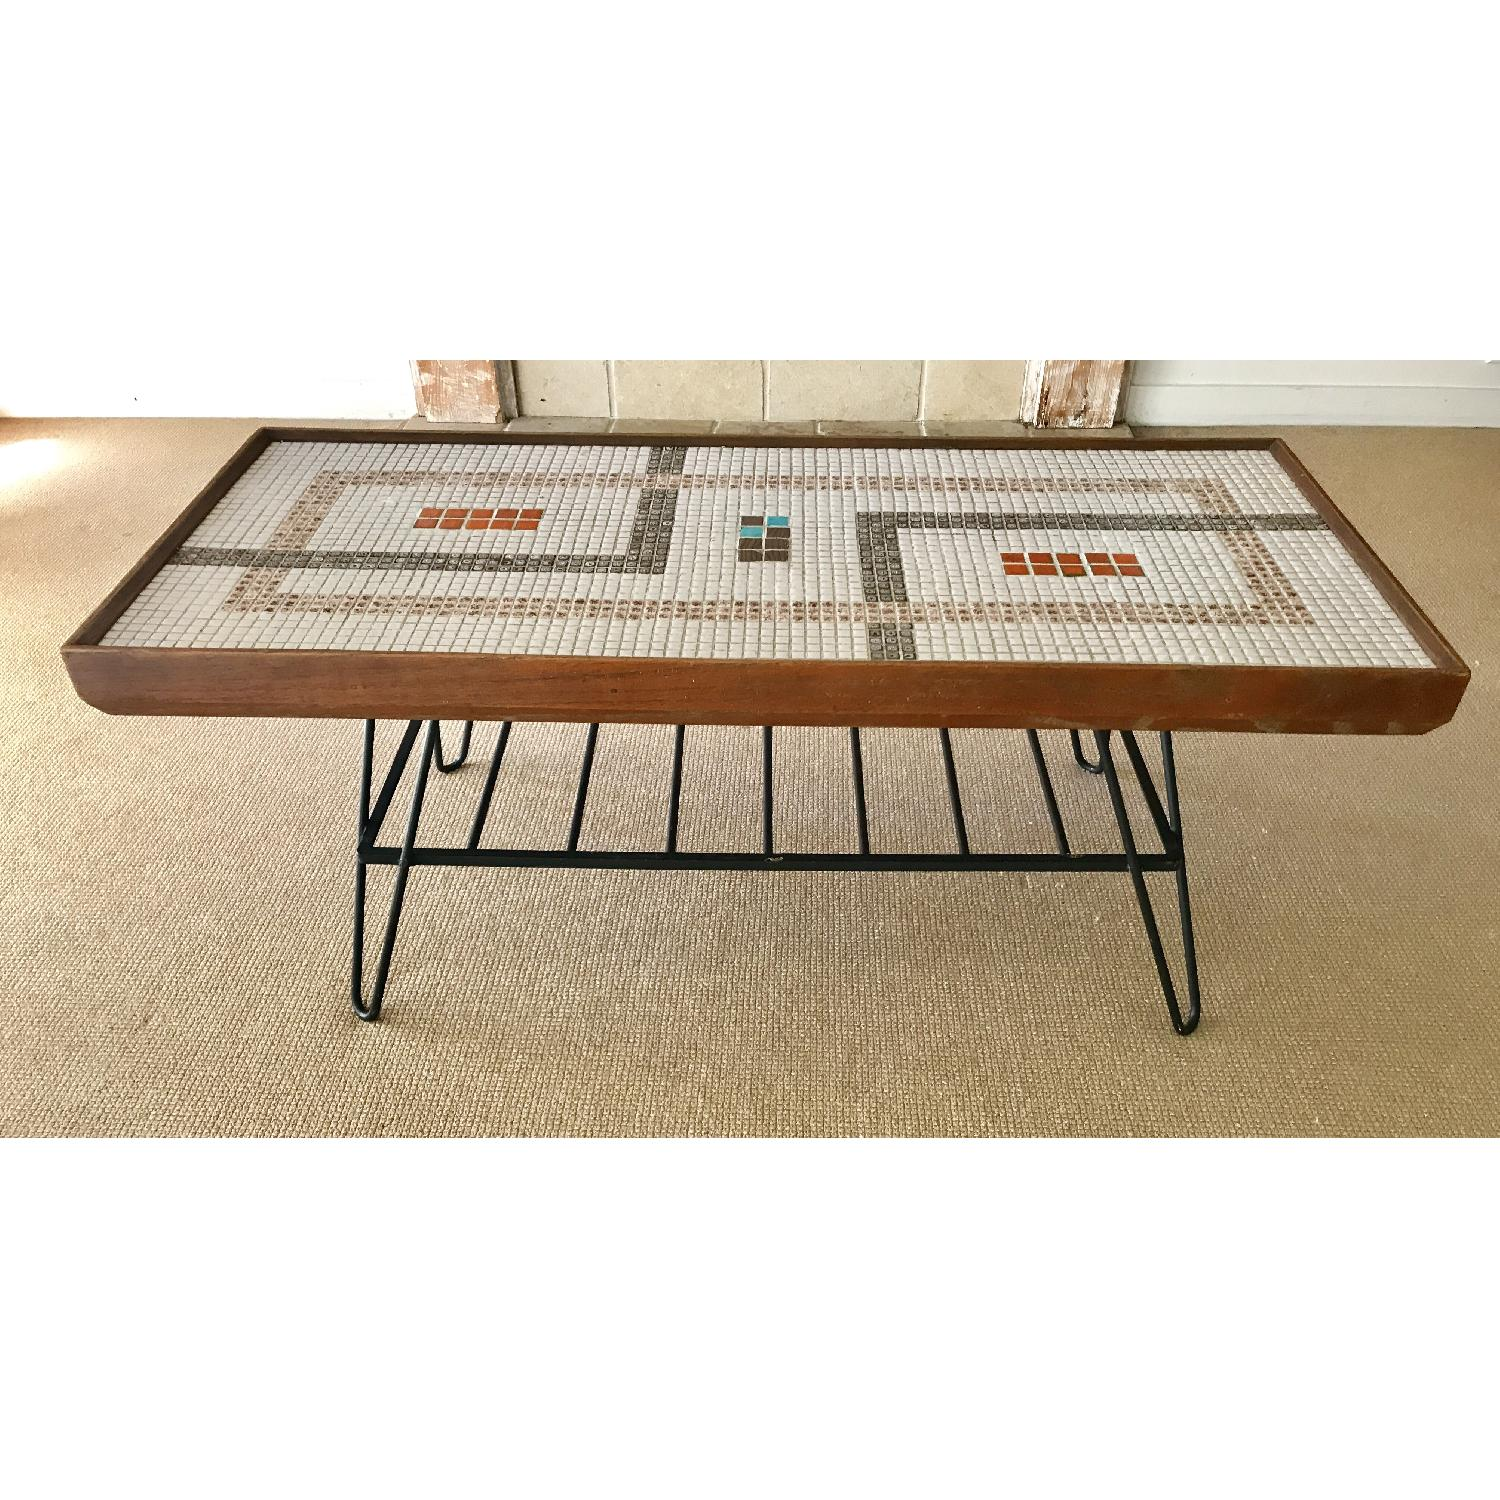 Mid century 50s coffee table w mosaic tile aptdeco mid century 50s coffee table w mosaic tile 0 geotapseo Image collections